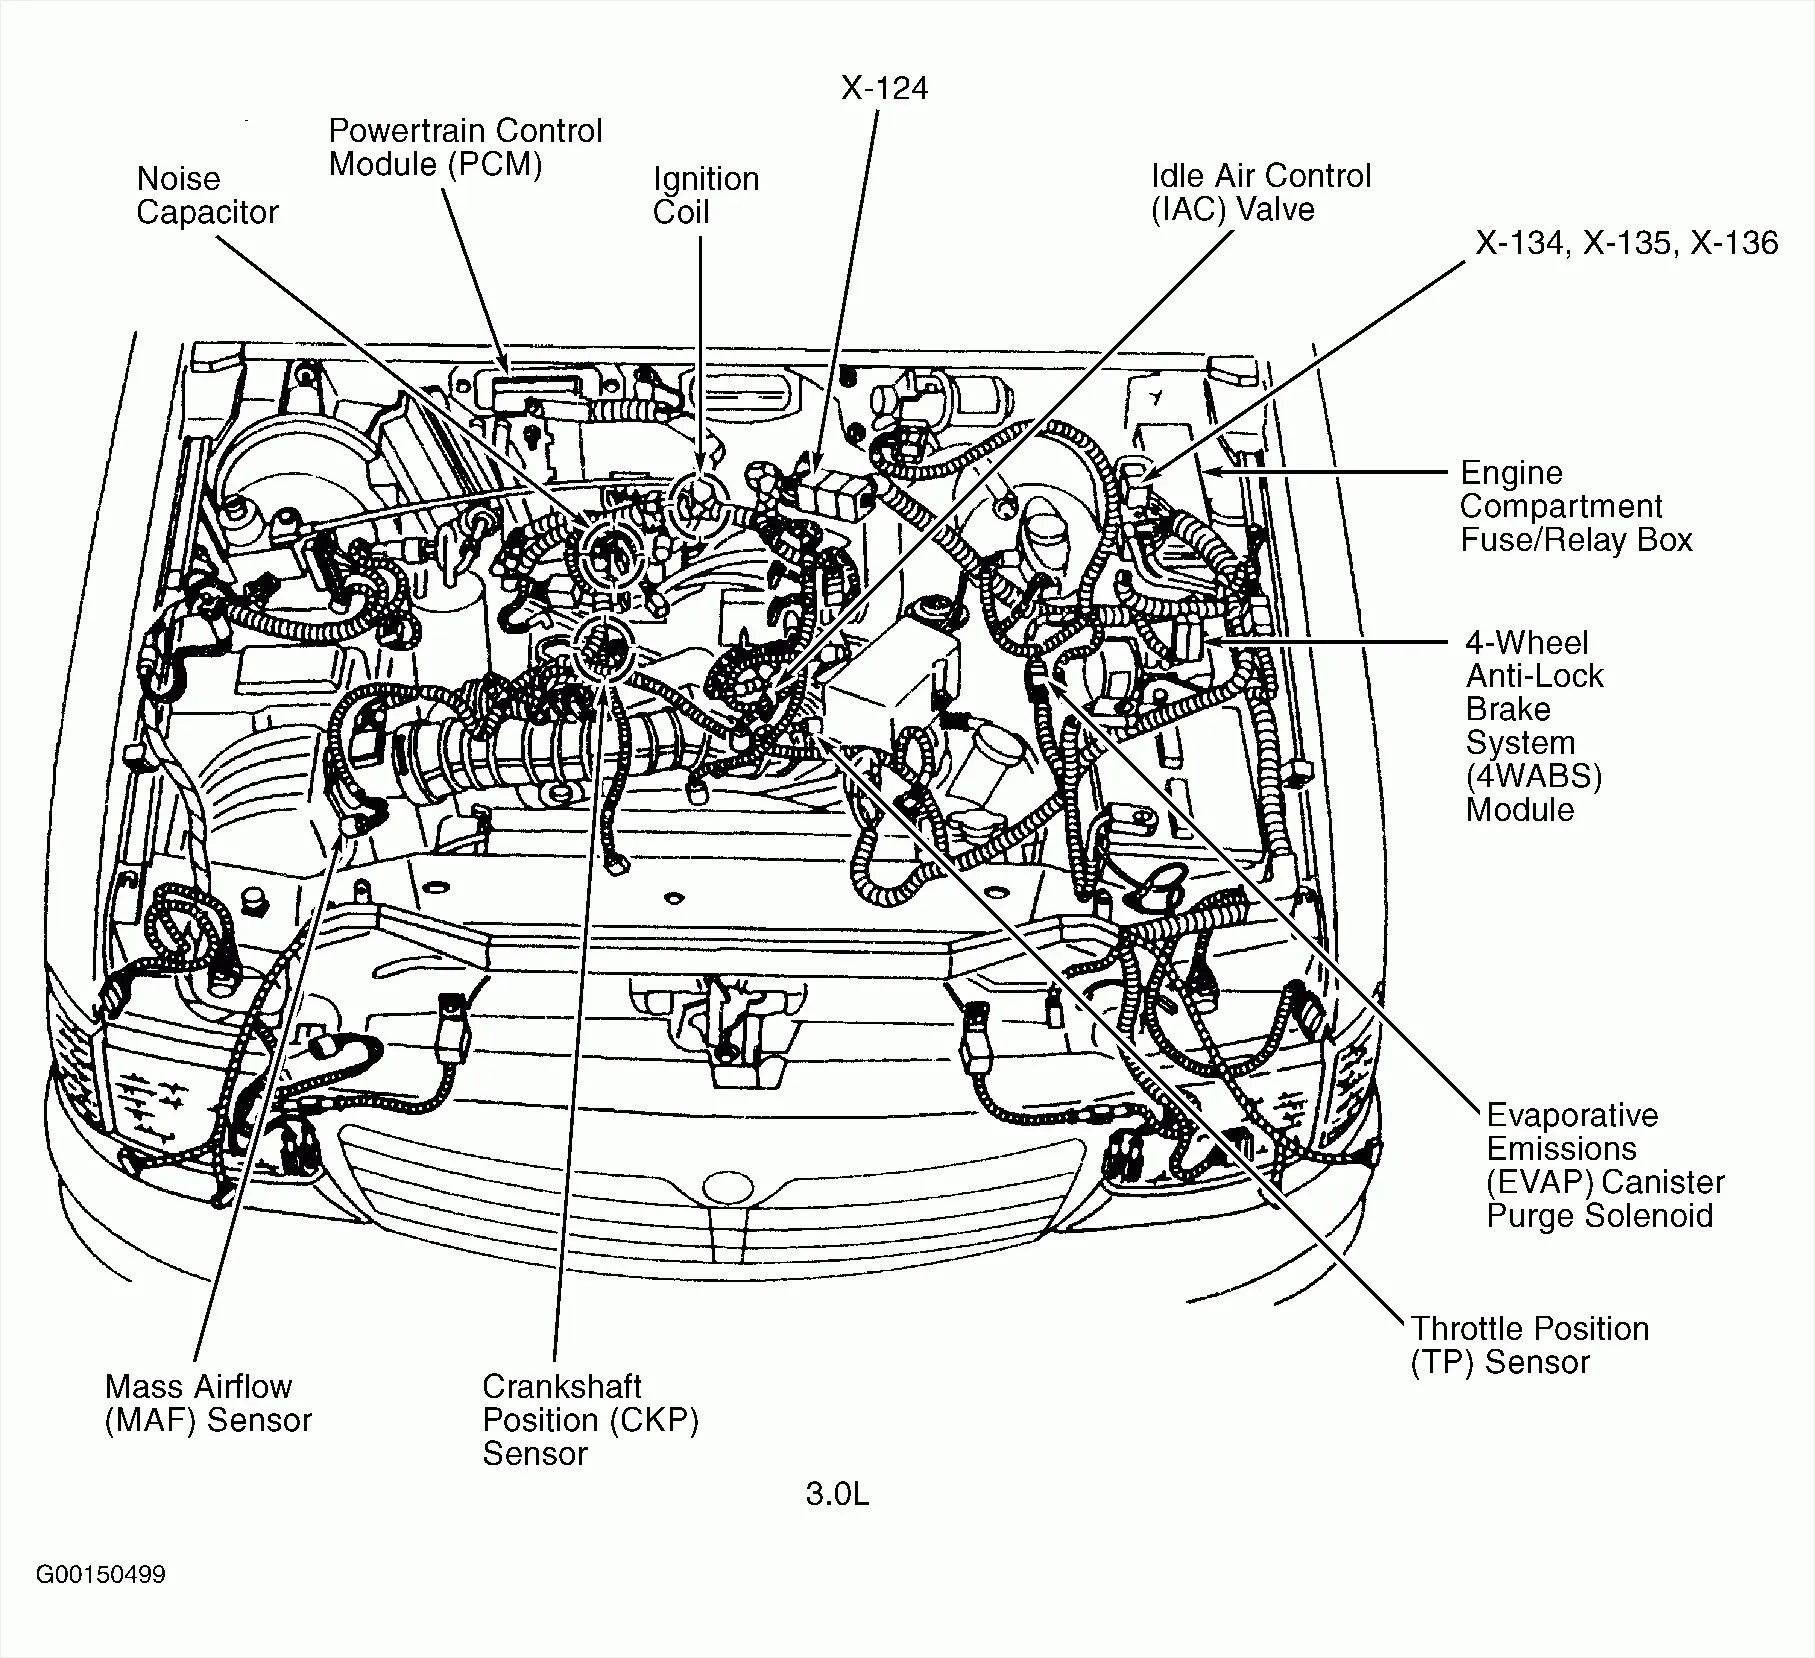 2008 audi a6 engine bay diagram wiring database library rh 31 arteciock de e46 engine bay diagram engine bay diagram [ 1815 x 1658 Pixel ]